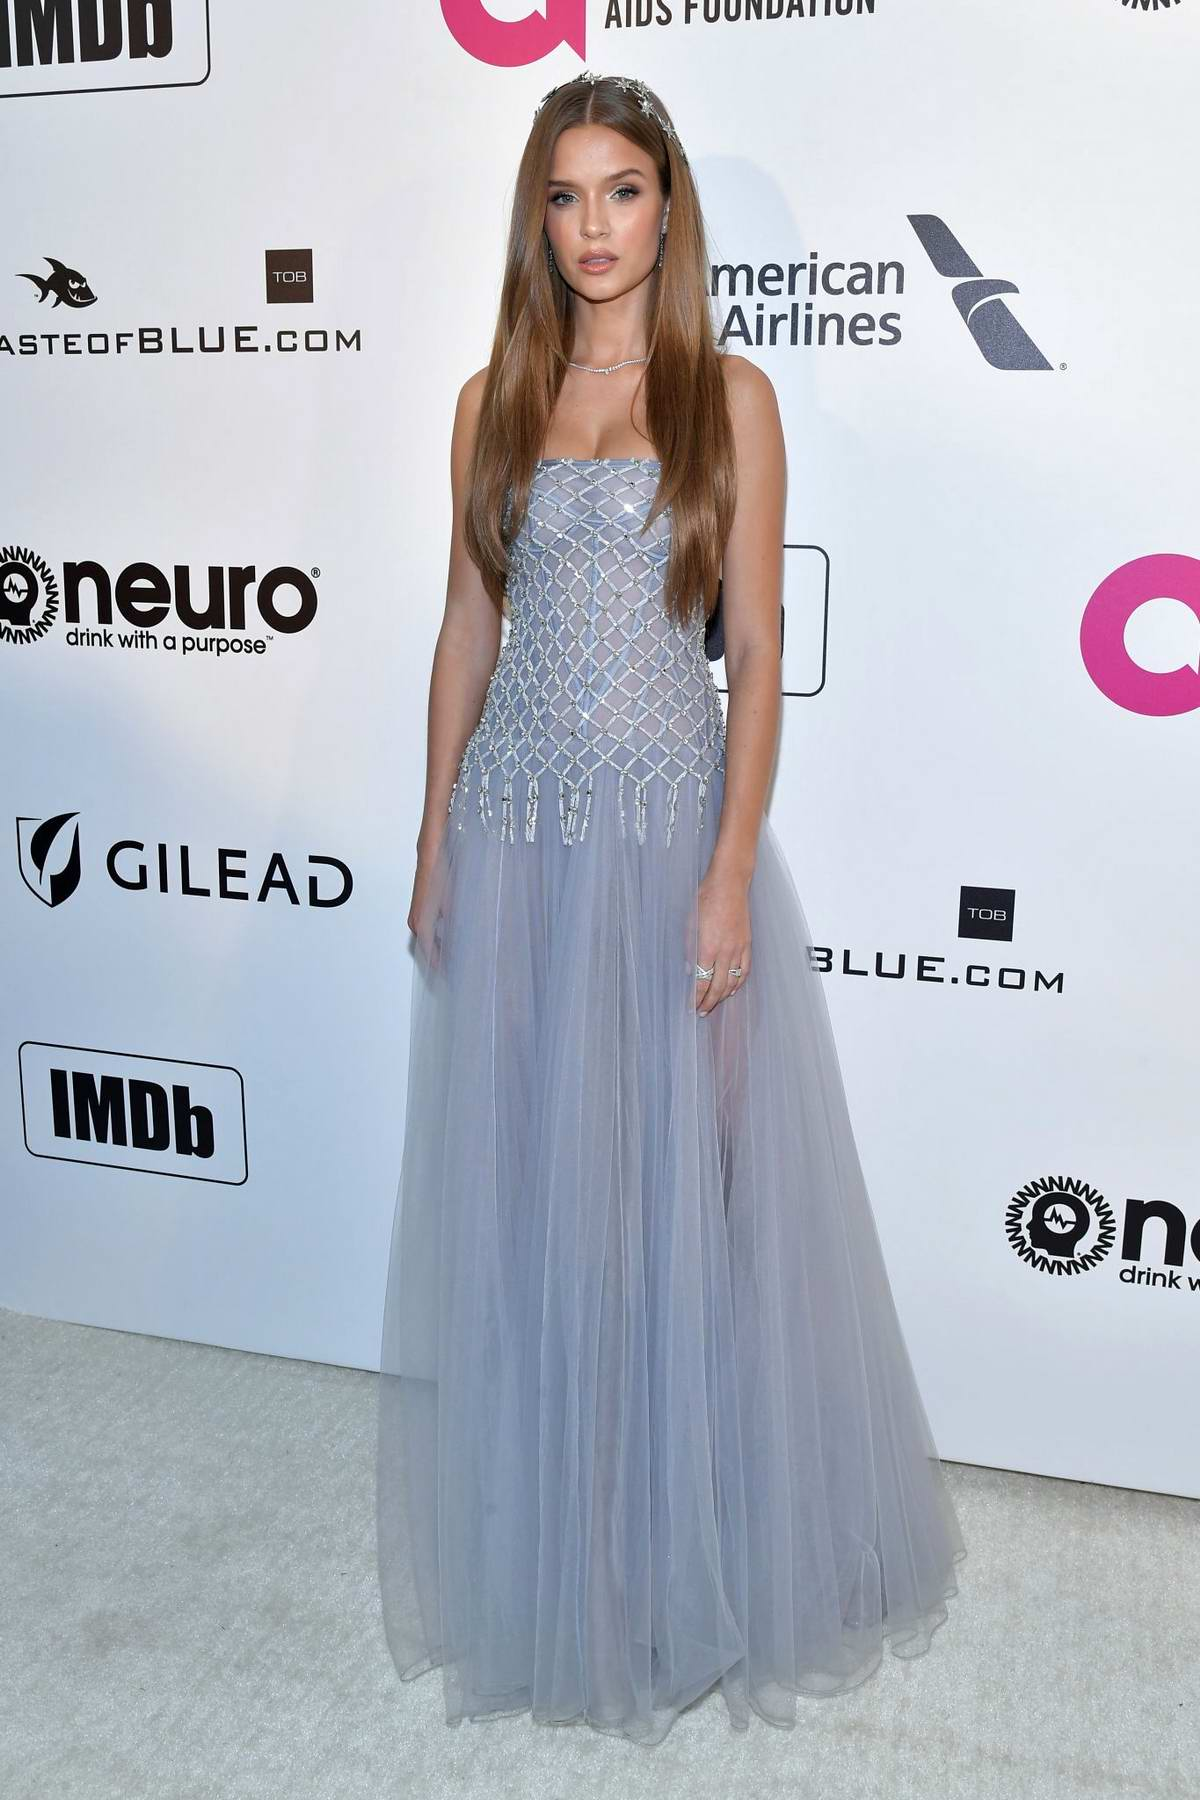 Josephine Skriver attends the 27th Annual Elton John AIDS Foundation Academy Awards Viewing Party in West Hollywood, Los Angeles